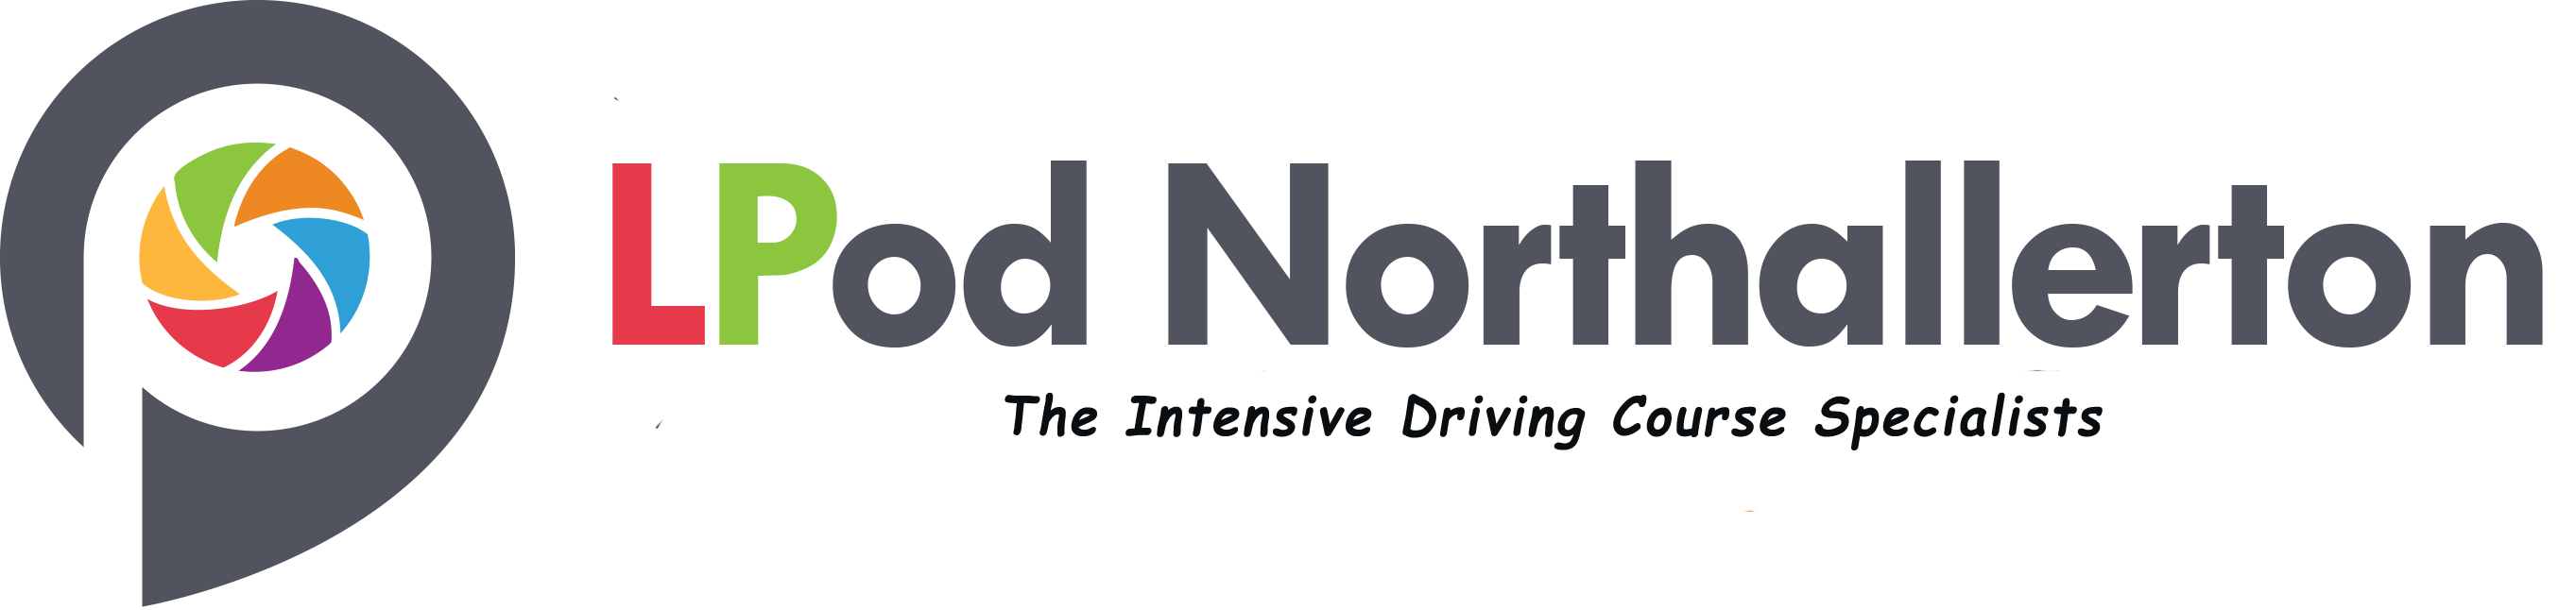 intensive driving courses Northallerton